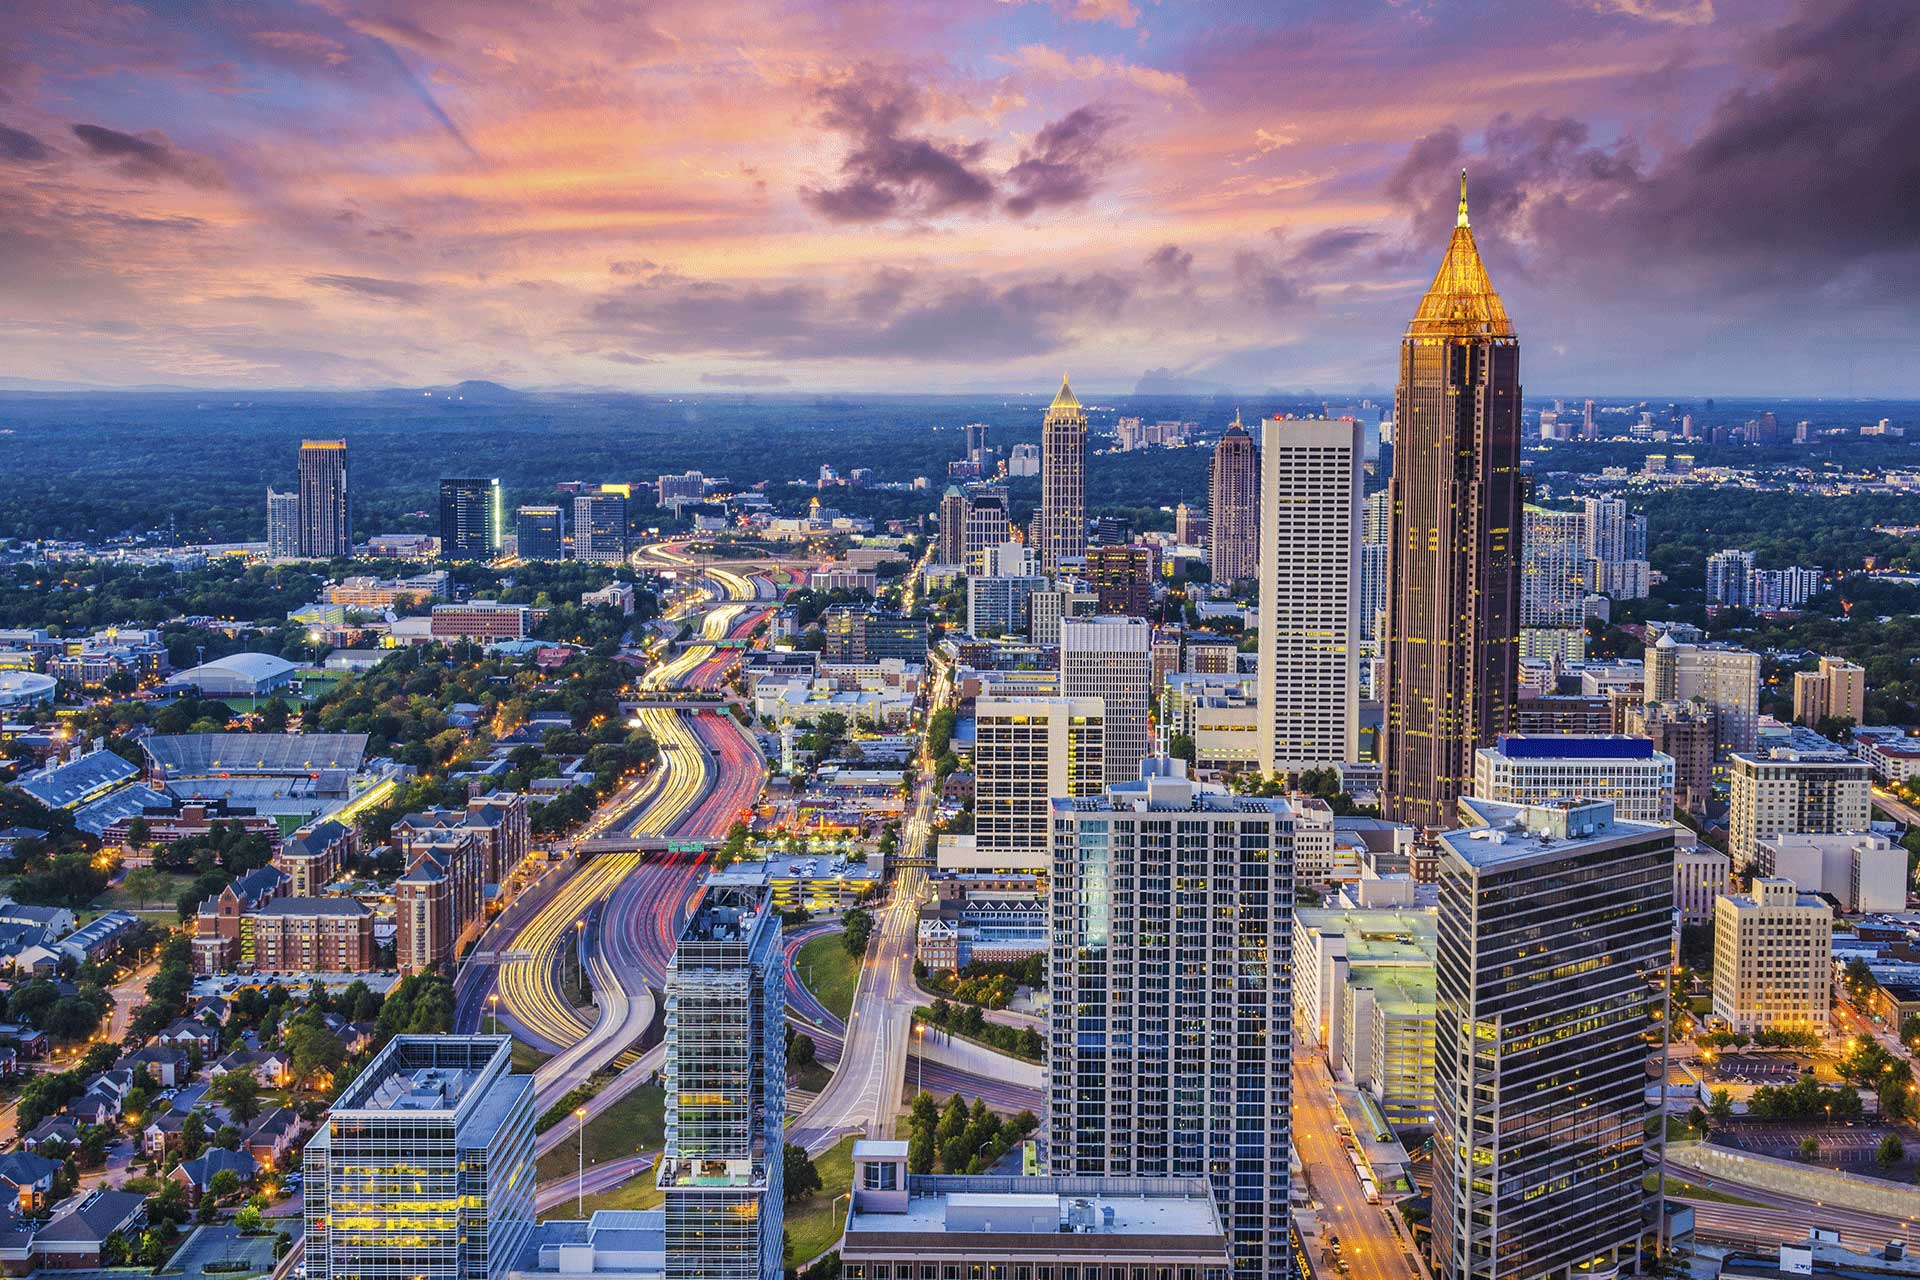 Aerial view of Atlanta at Dawn